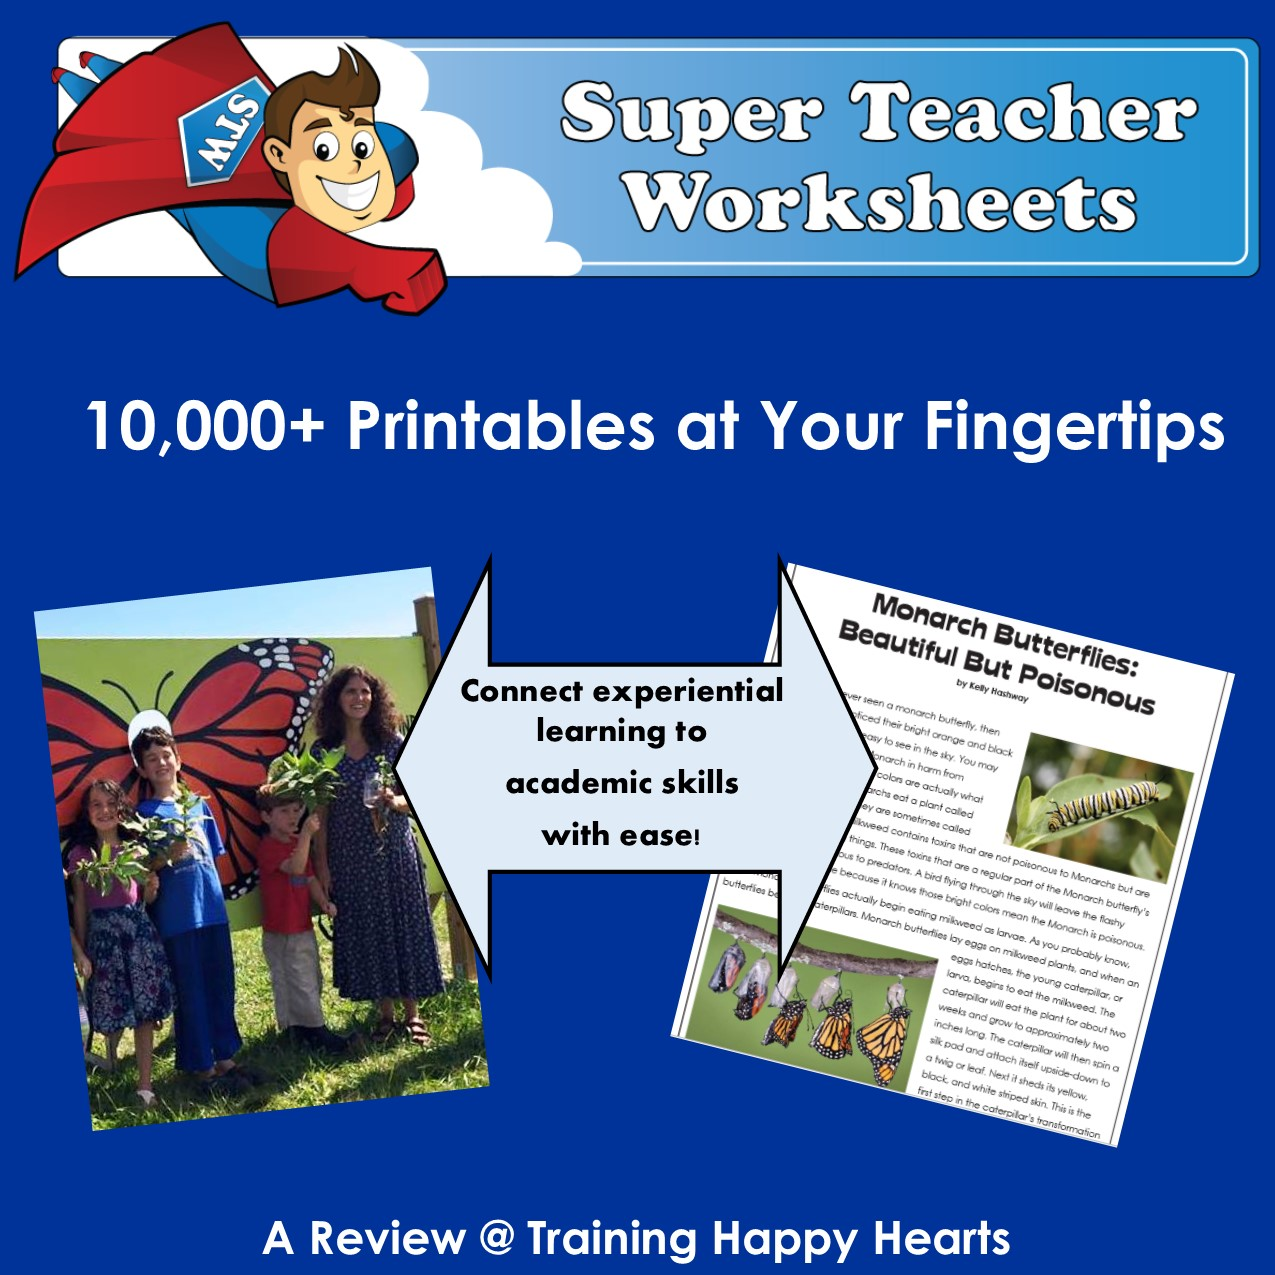 Super Teacher Worksheets Login And Password - fallcreekonline.org